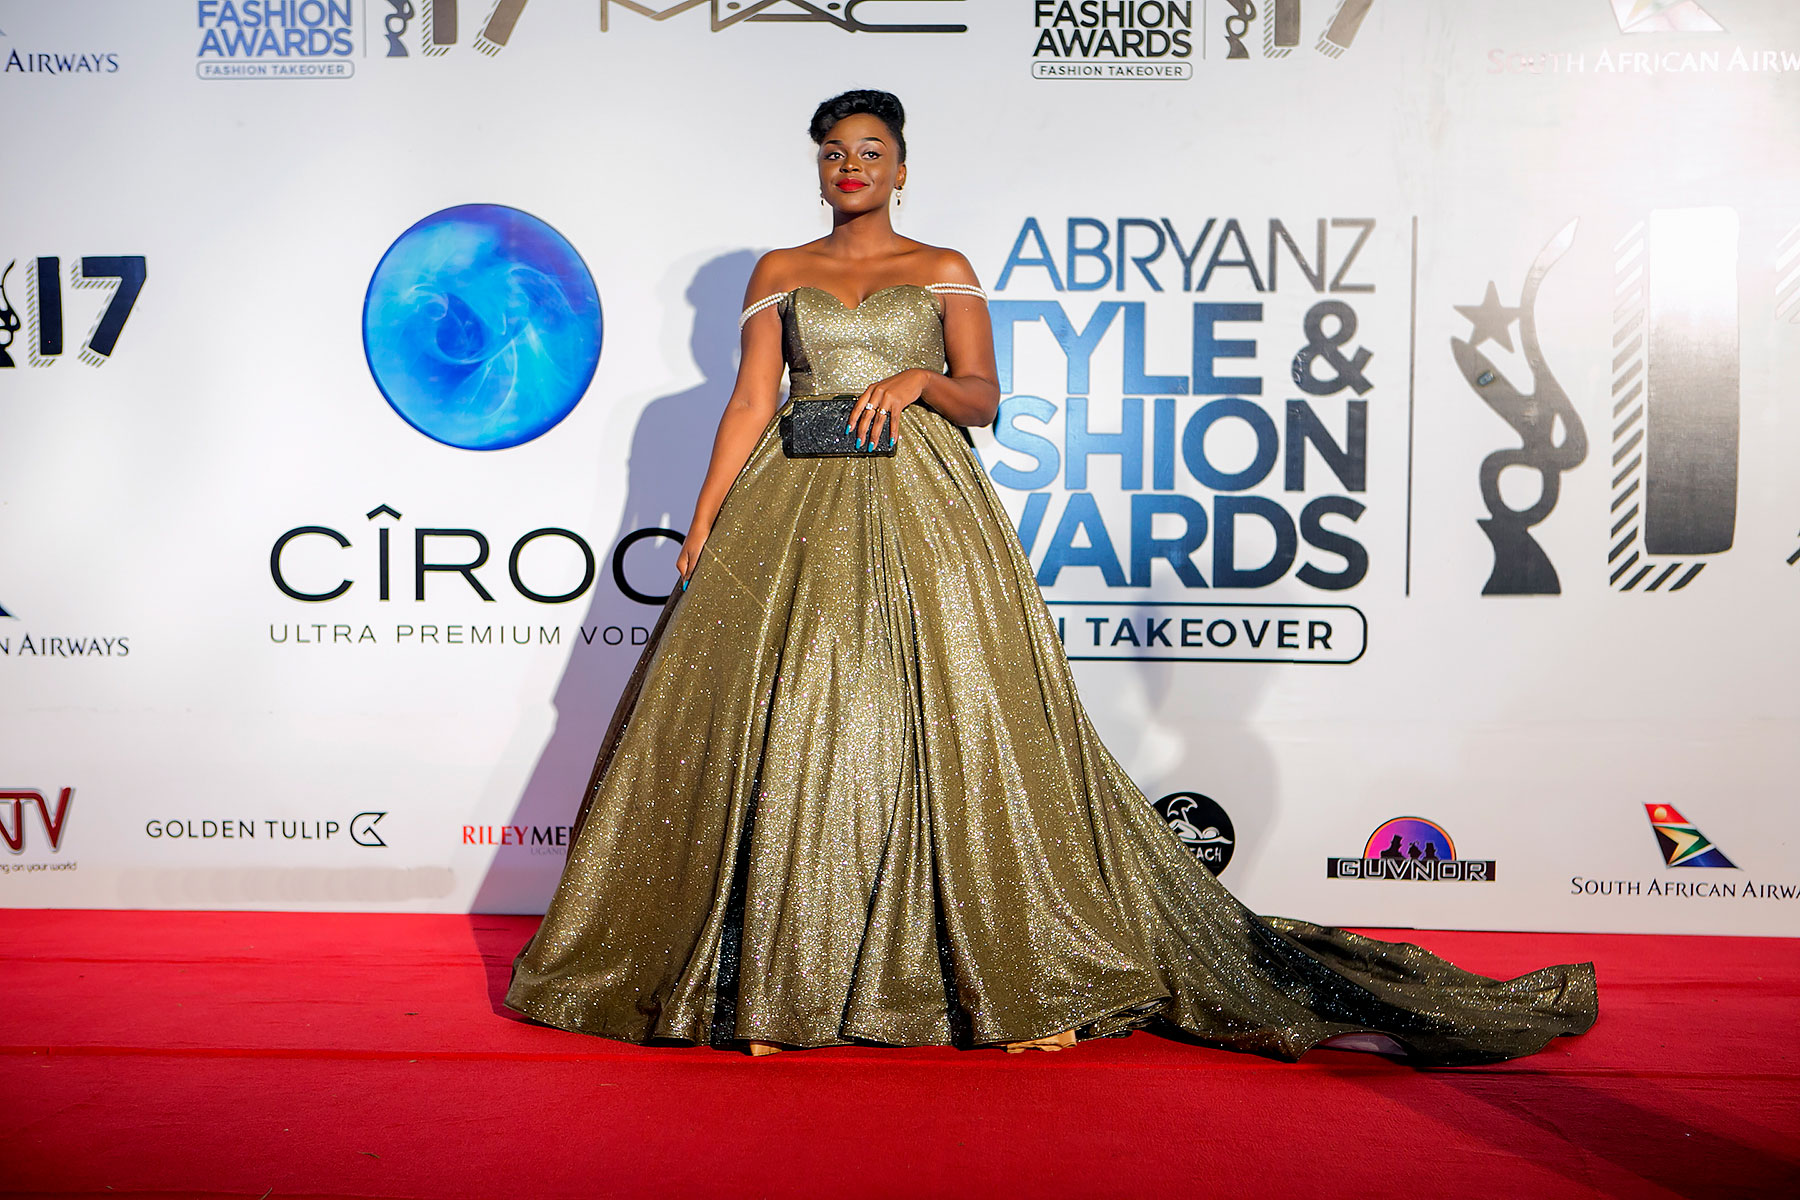 New Categories In The 7th Edition Of Abryanz Style And Fashion Awards 2019 The Campus Times